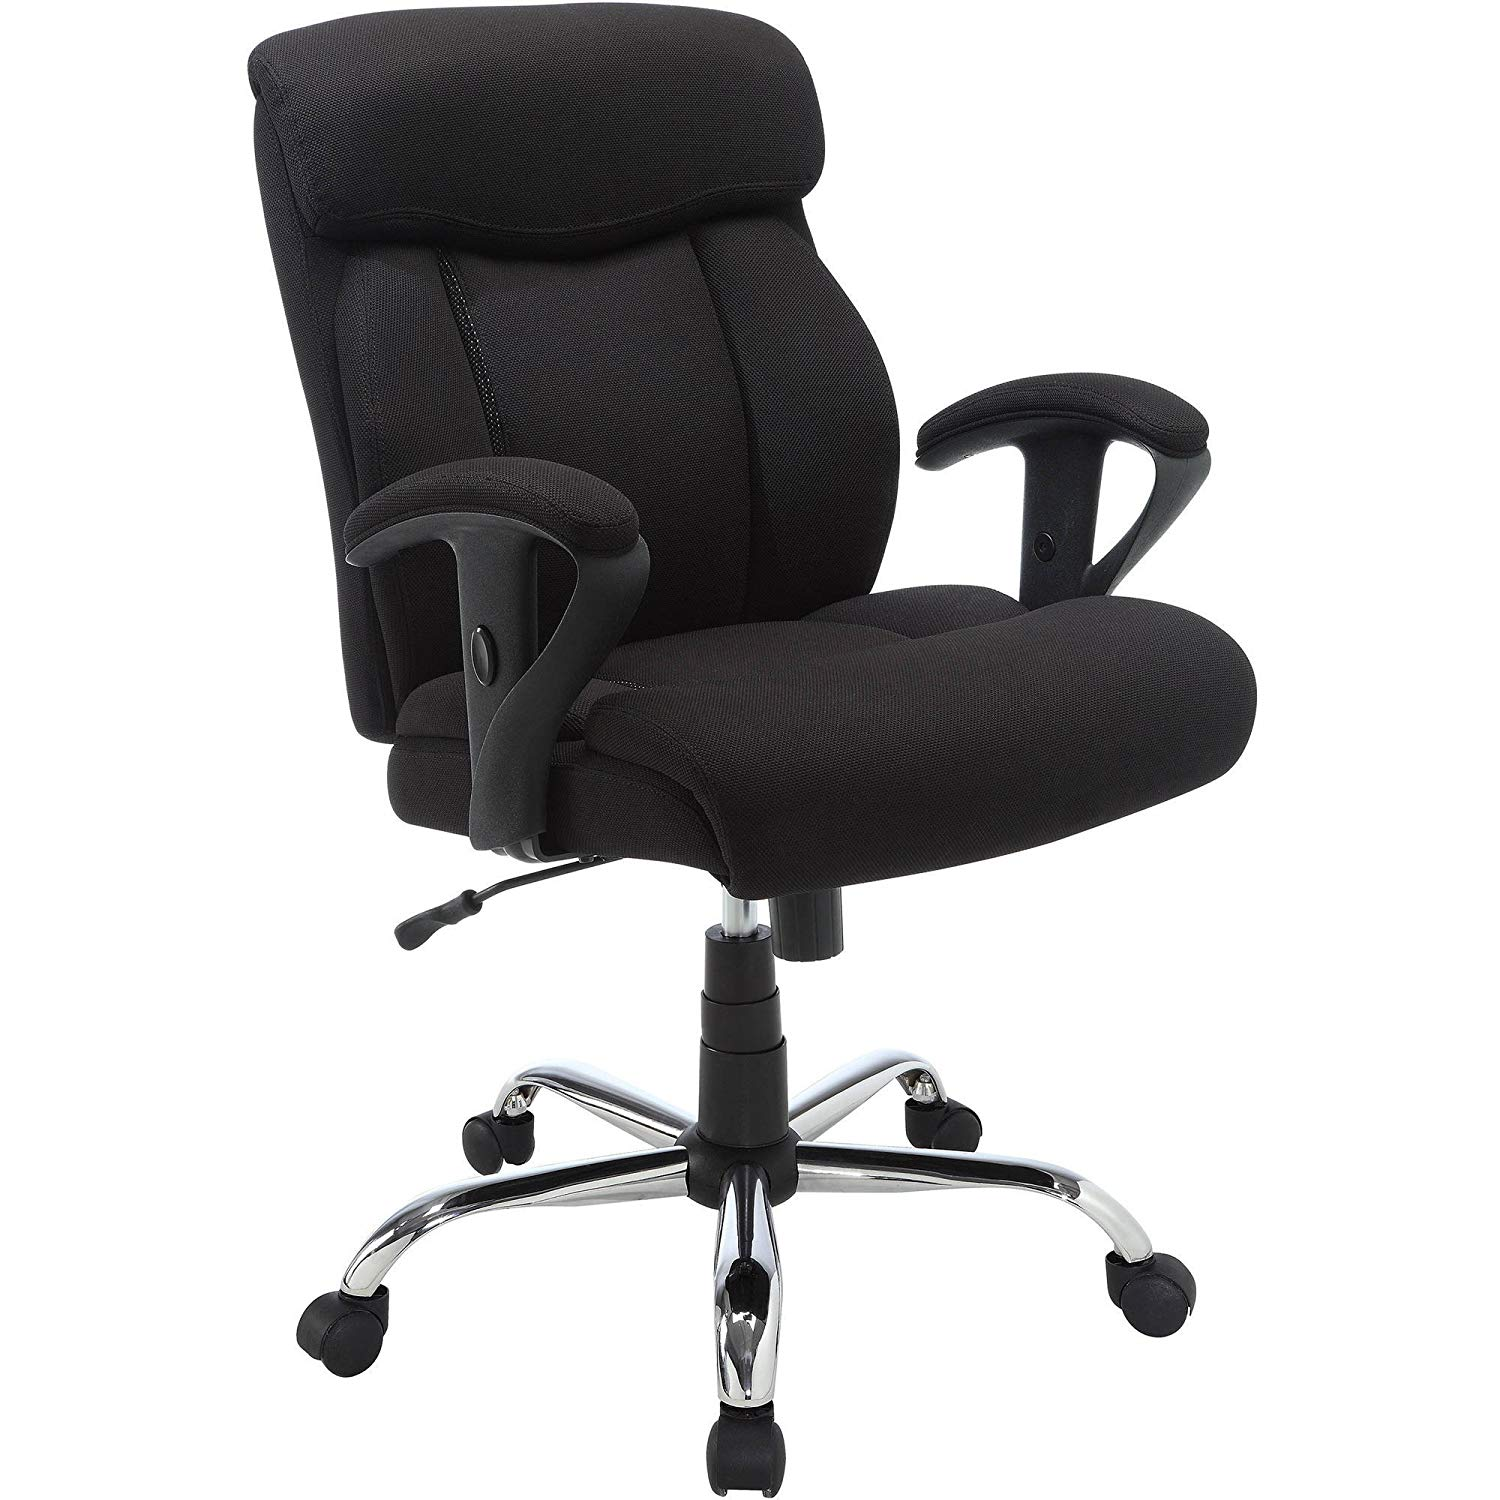 Manager Tall Big Heavy Duty Office Chair Soft Black Breathable Mesh Fabric Upholstery Double Layer Body Pillows Arm and Seat Height Adjustability Smooth Rolling Multi Surface Dual Wheel Casters